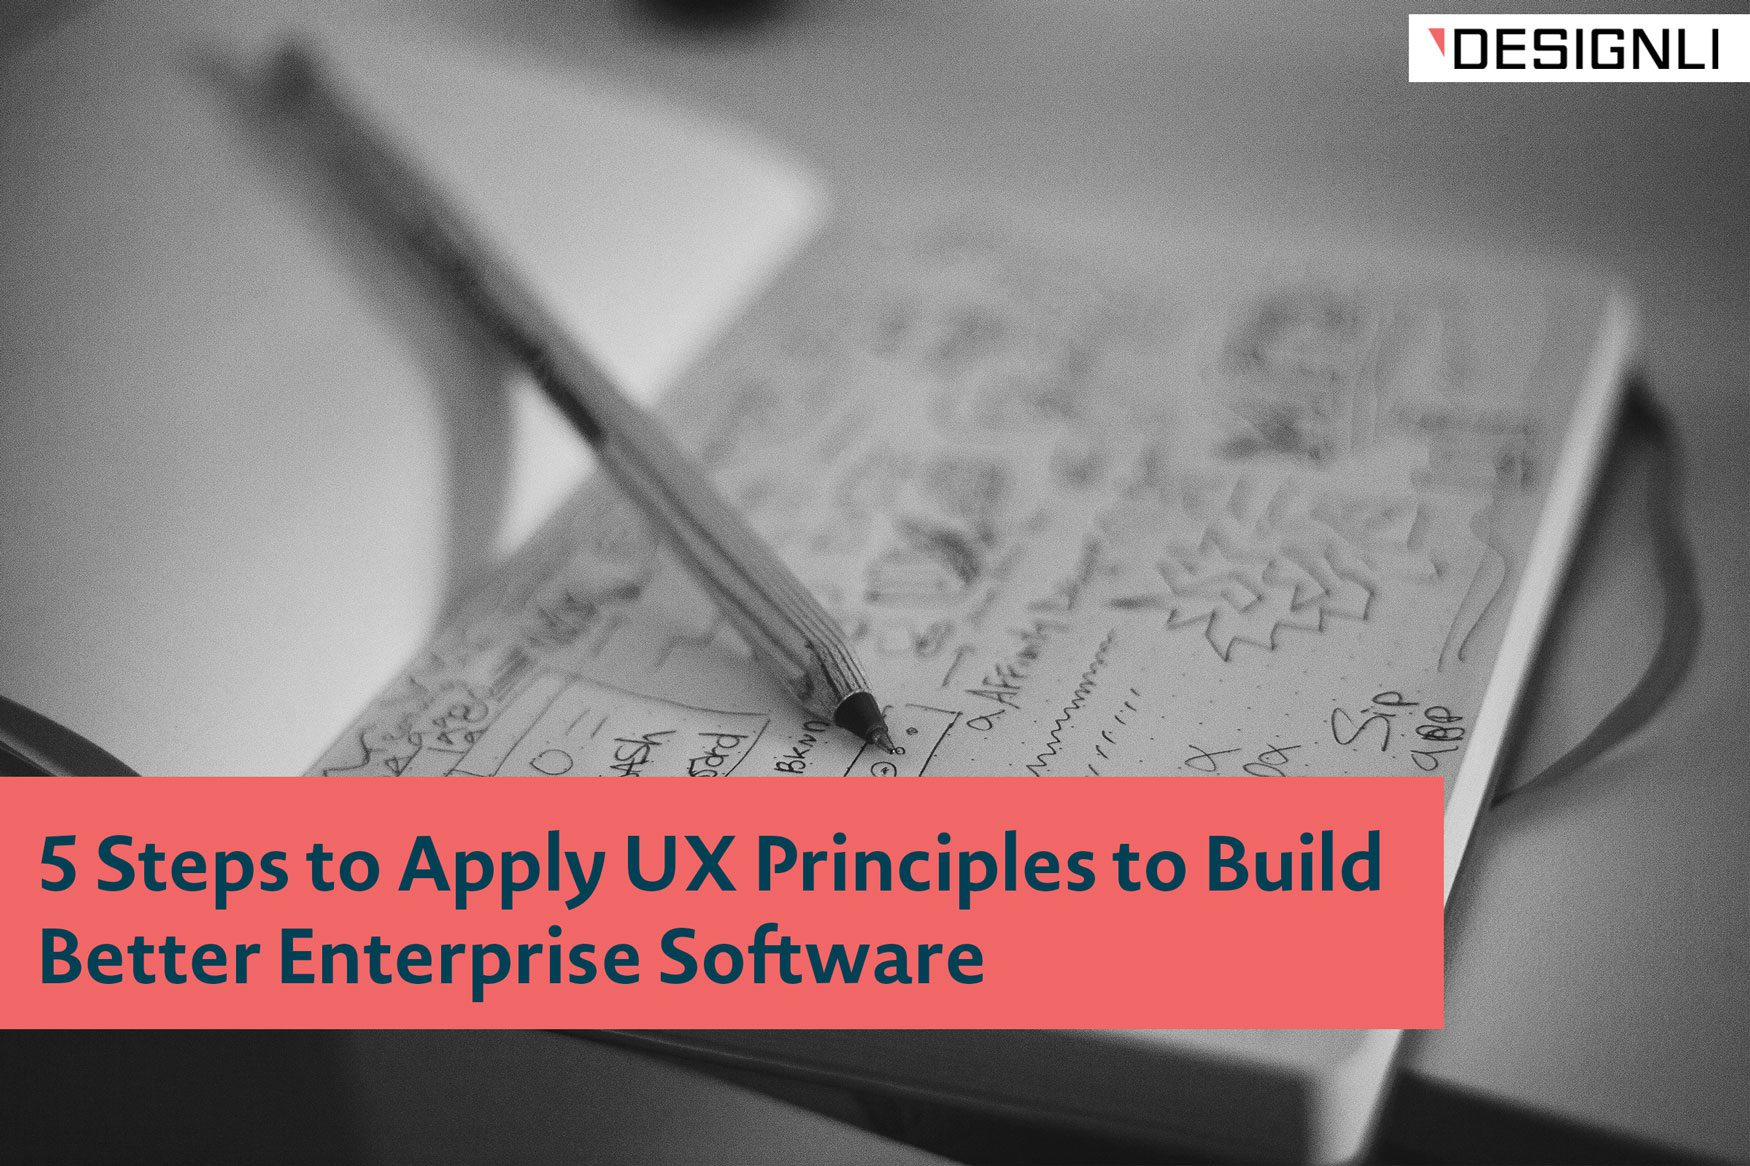 5 Steps to Apply UX Principles to Build Better Enterprise Software